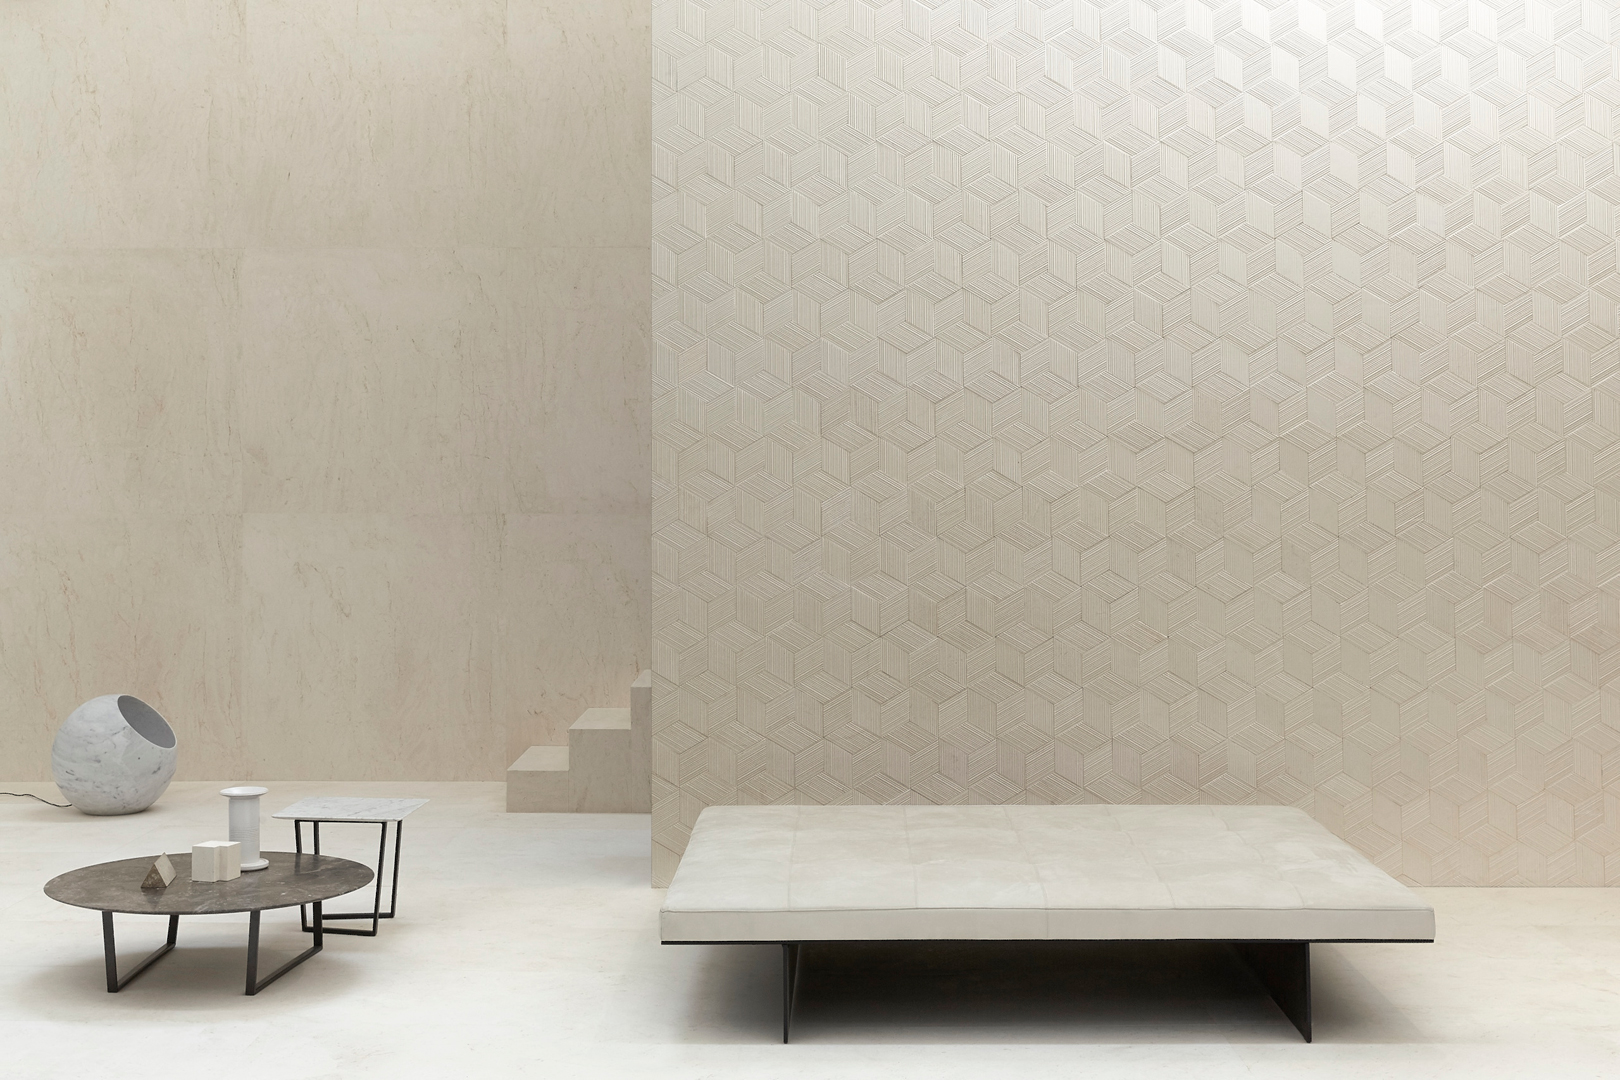 Elisa Ossino Studio — Salvatori — Walls and Floors